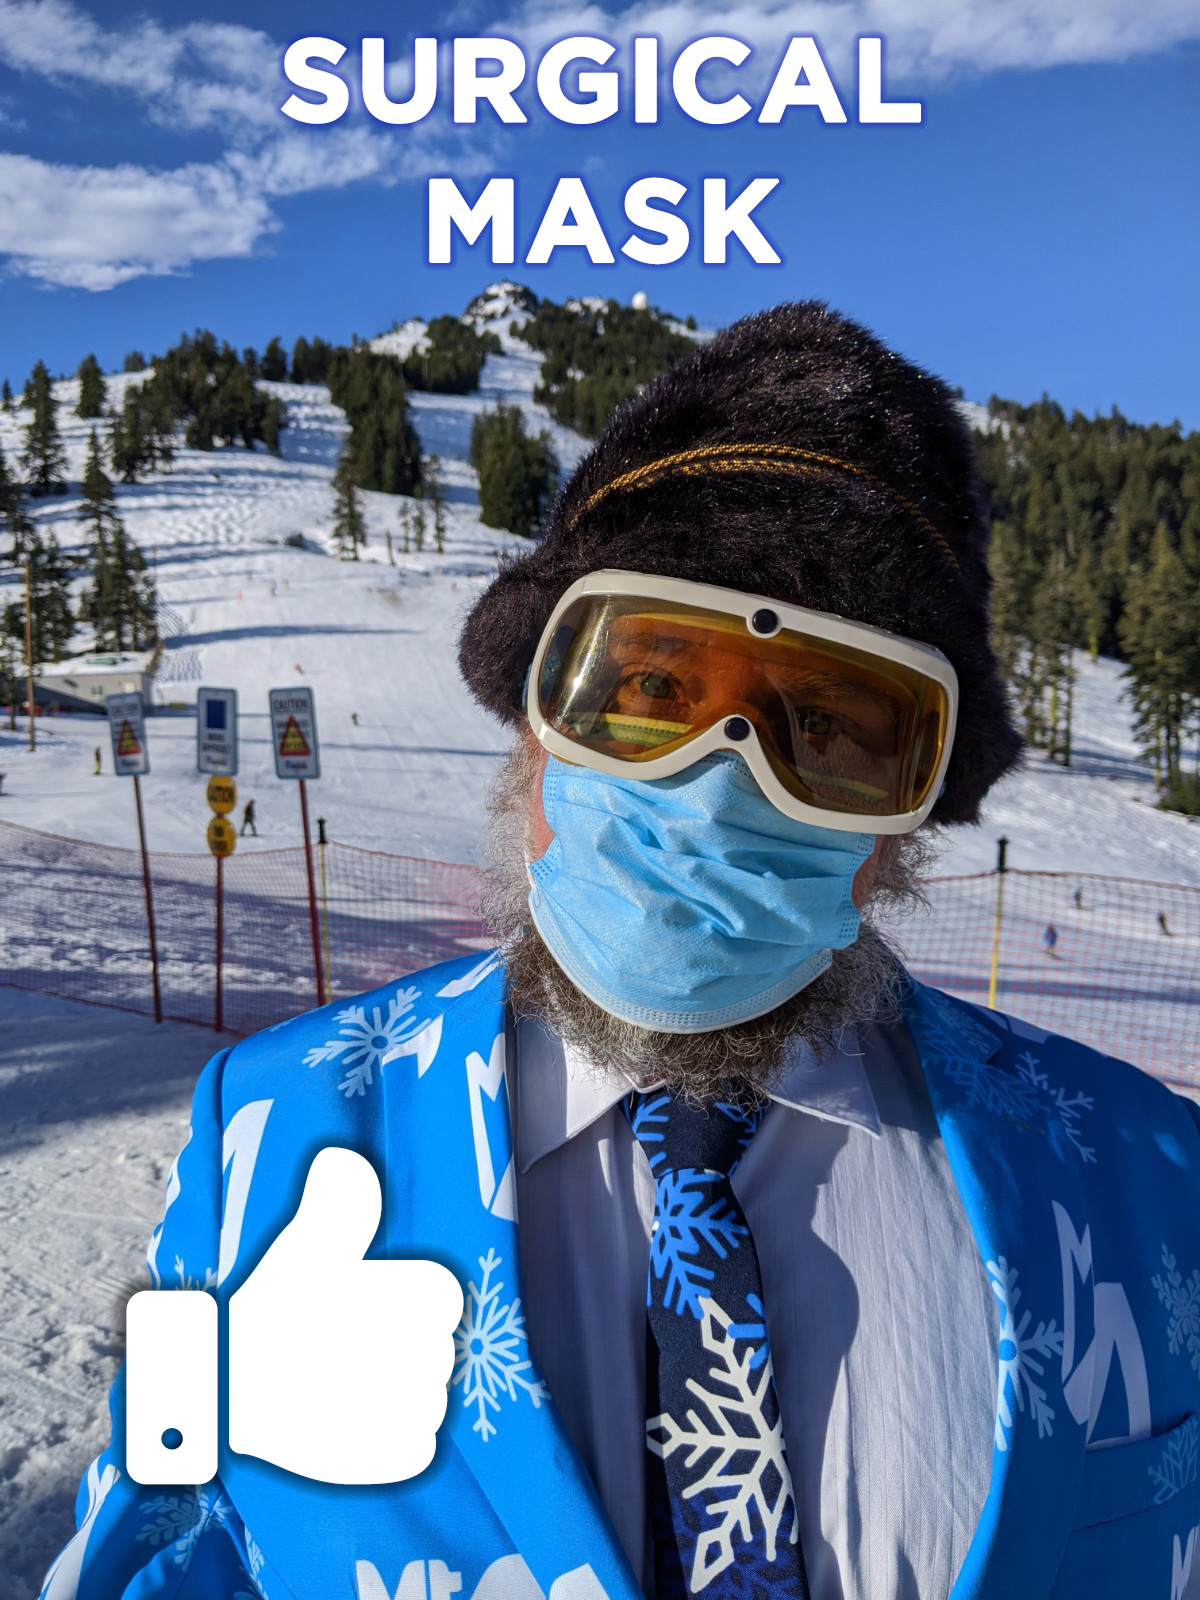 Surgical Mask - Thumbs Up!